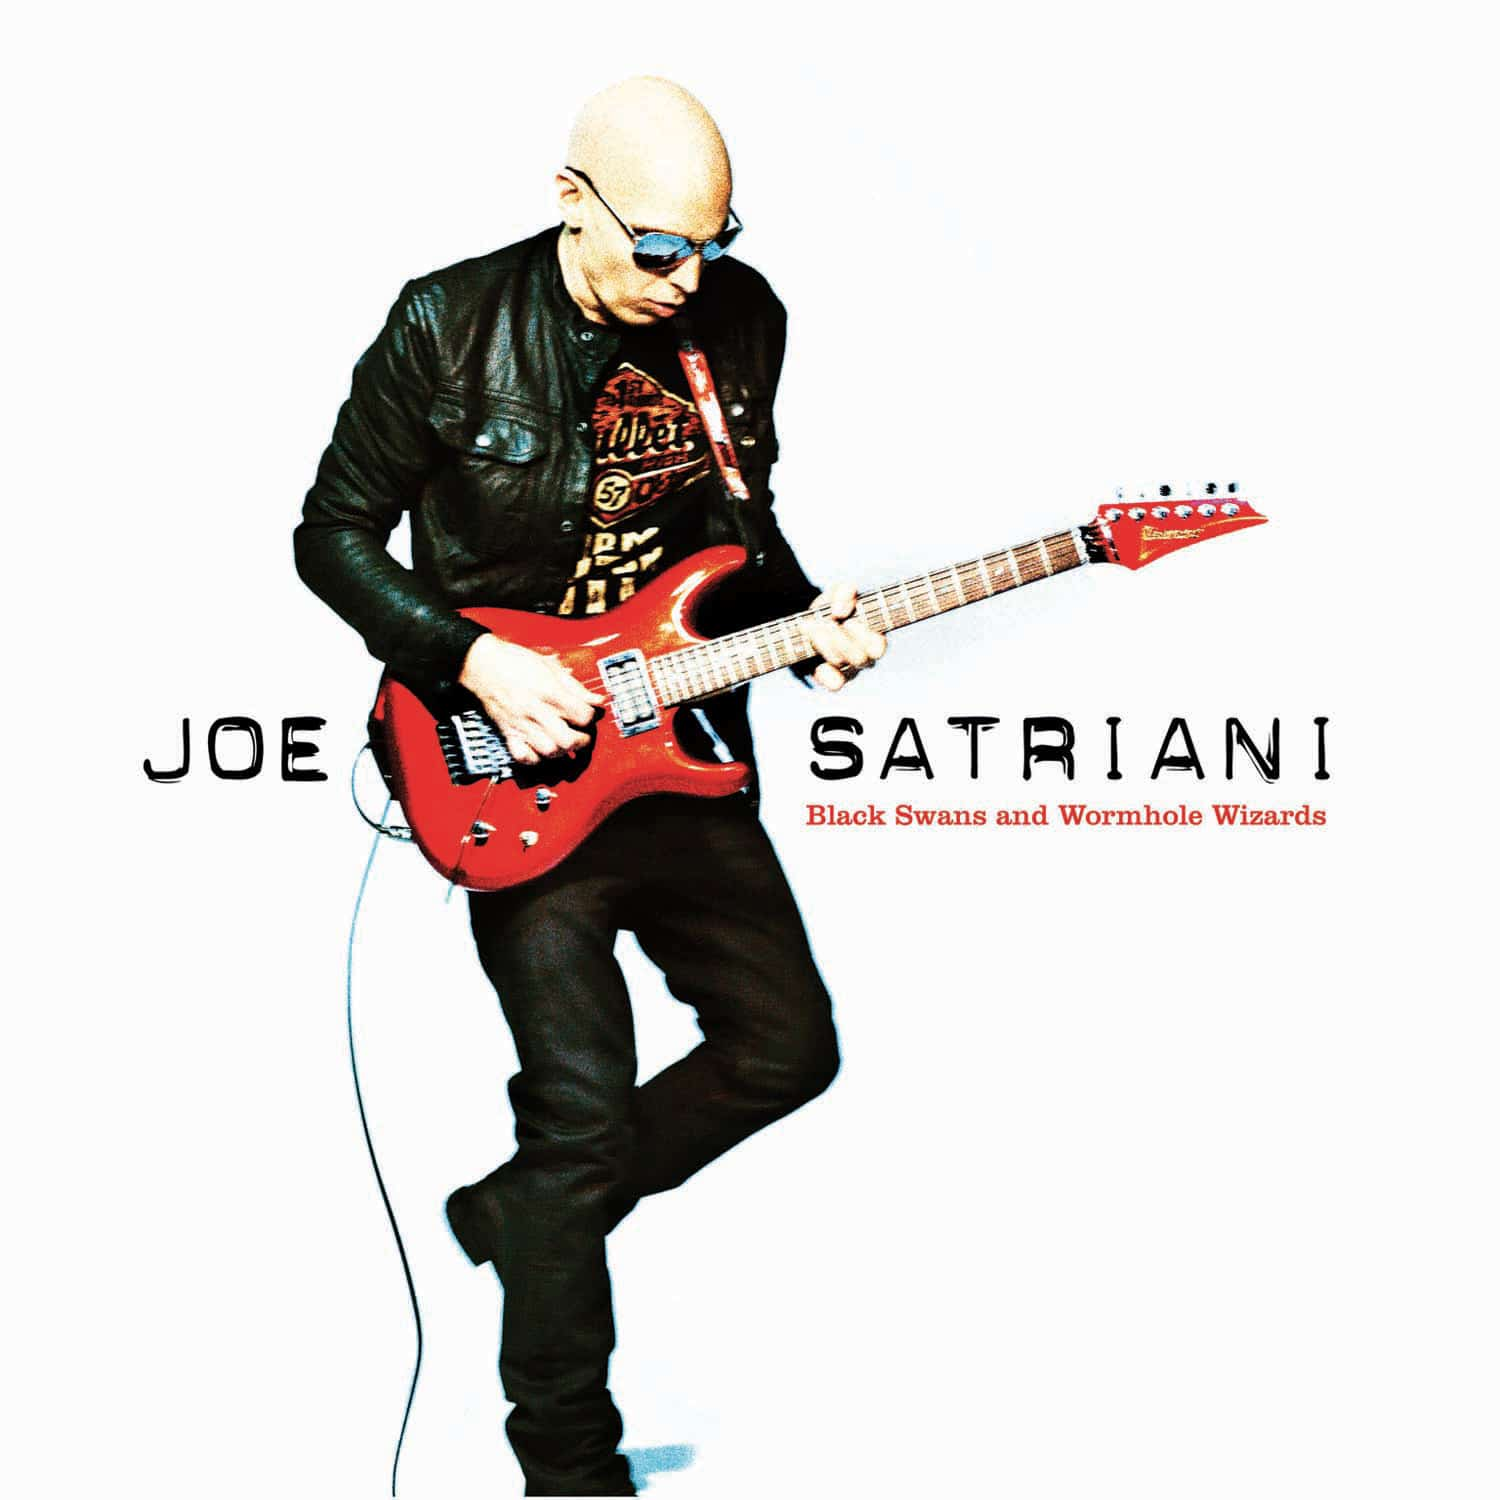 Joe Satriani Black Swans And Wormhole Wizards 2010 album CD